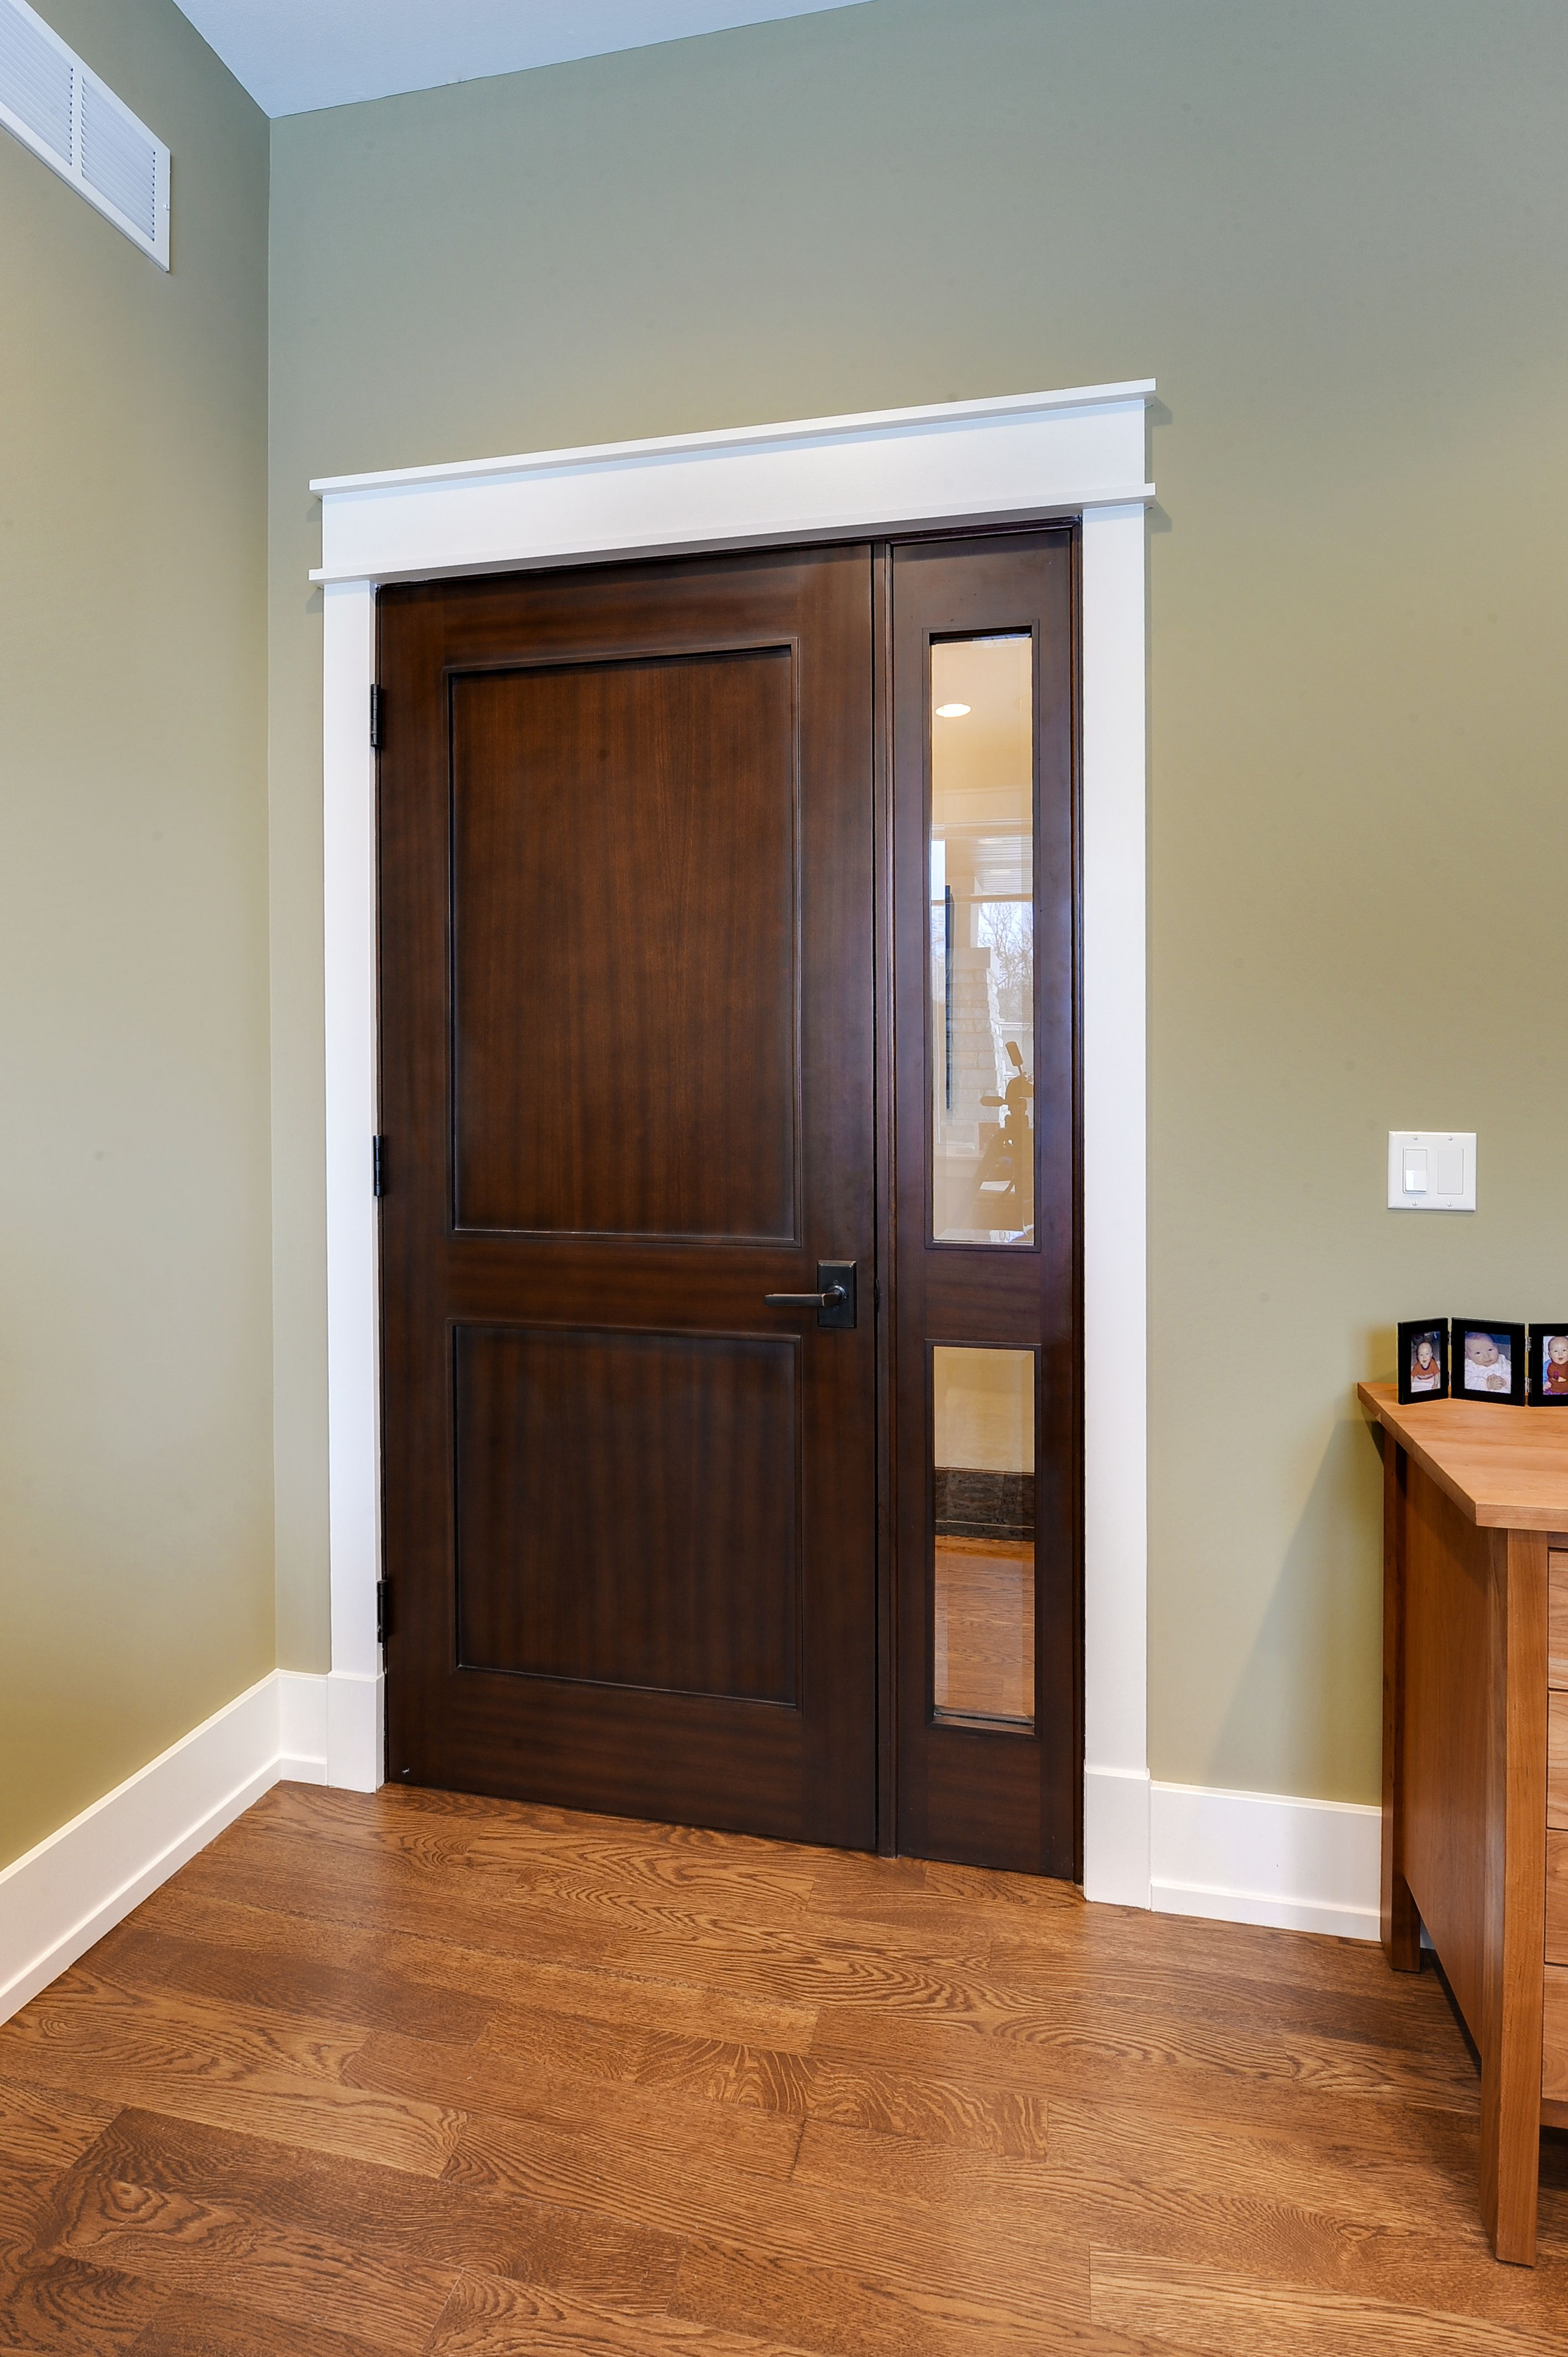 Custom Solid Wood Door with Sidelite for the Home Office